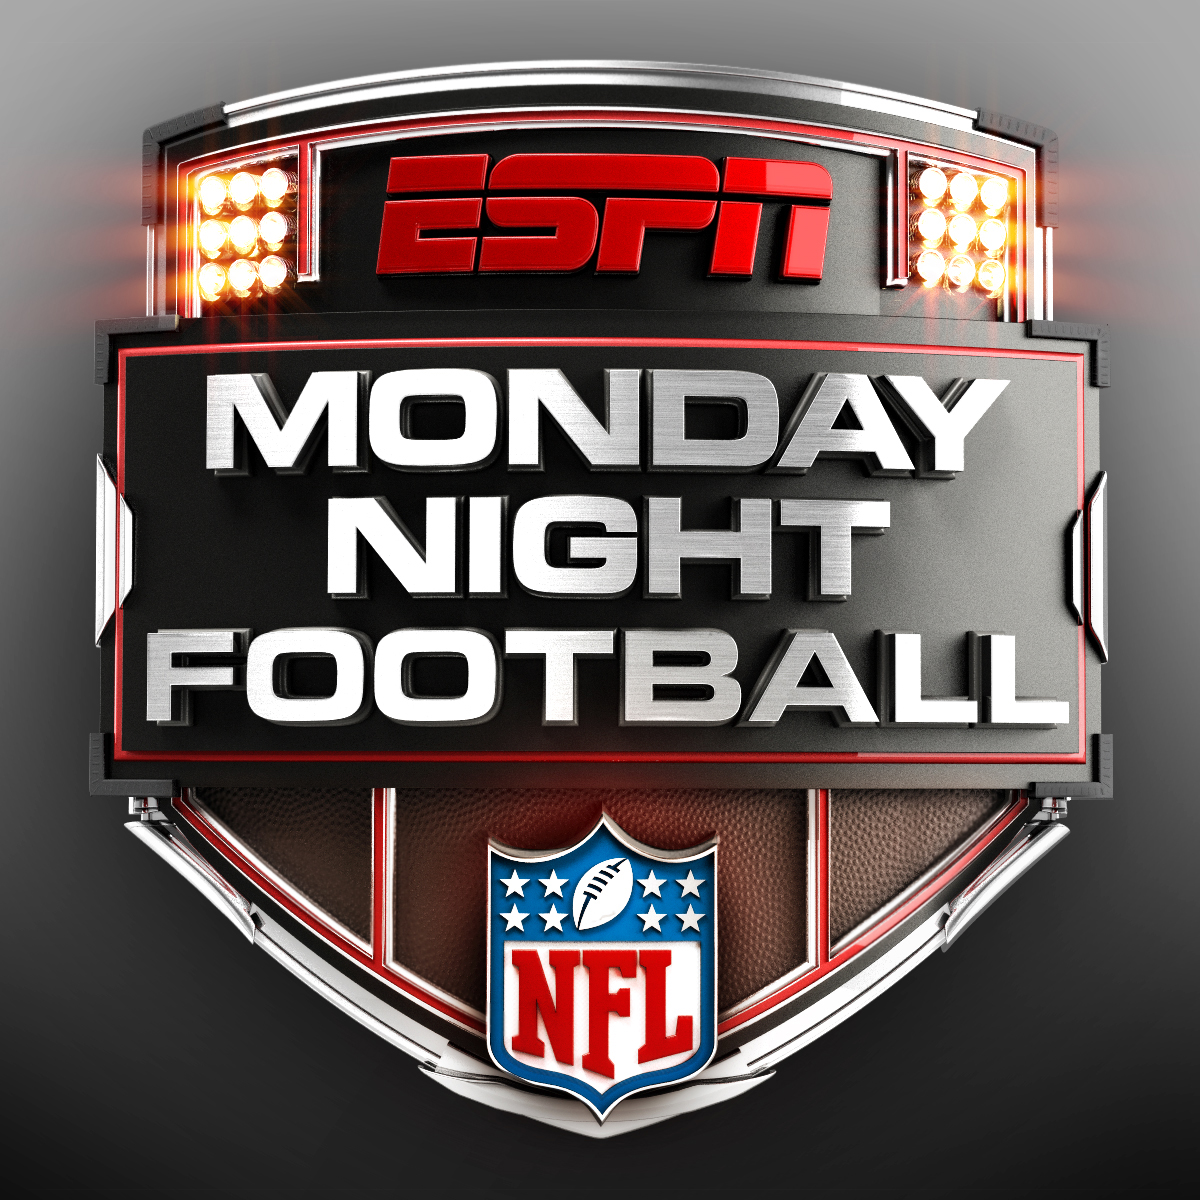 Nfl expected to consider future sunday night playoff games espn - Monday Night Football Espn Logo